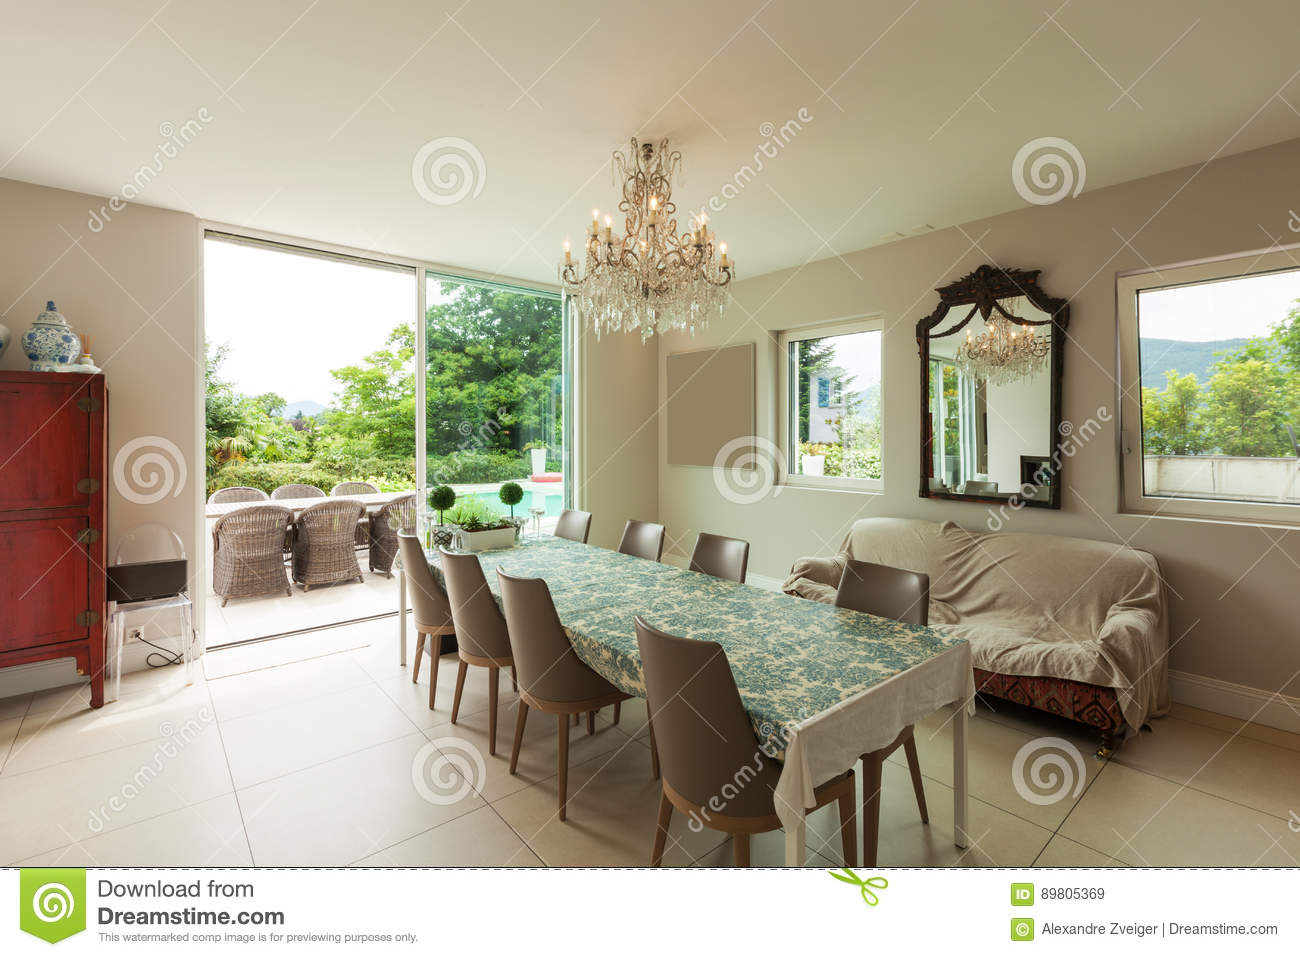 Modern House Dining Room Stock Image Image Of Apartment 89805369